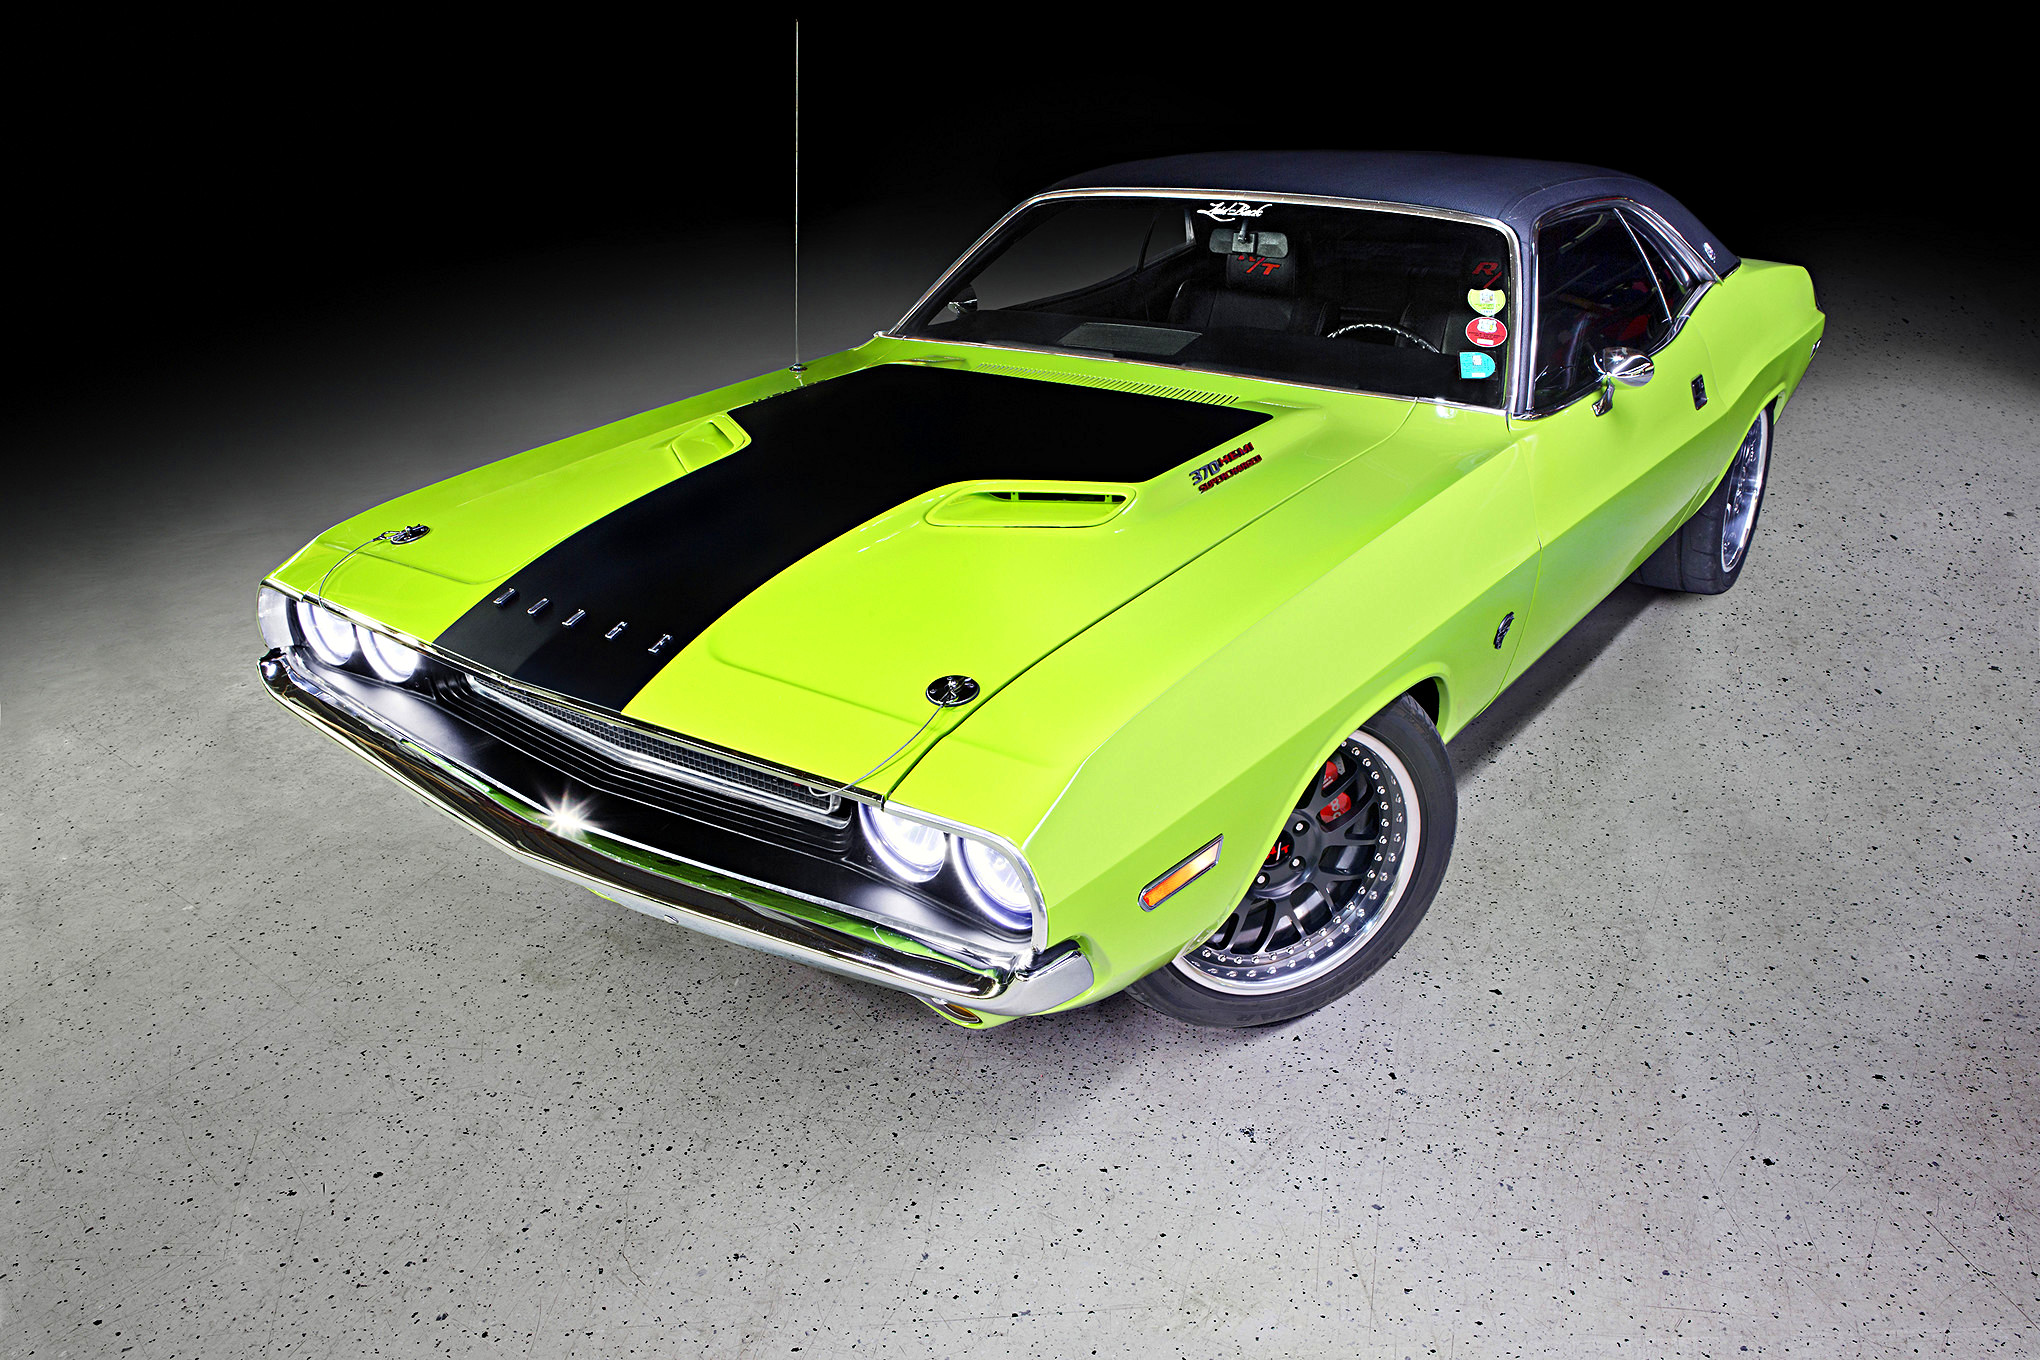 1970 Challenger Meet The First Ever Non Hack Hellcat Swap Rk Motors Classic Cars And Muscle Cars For Sale